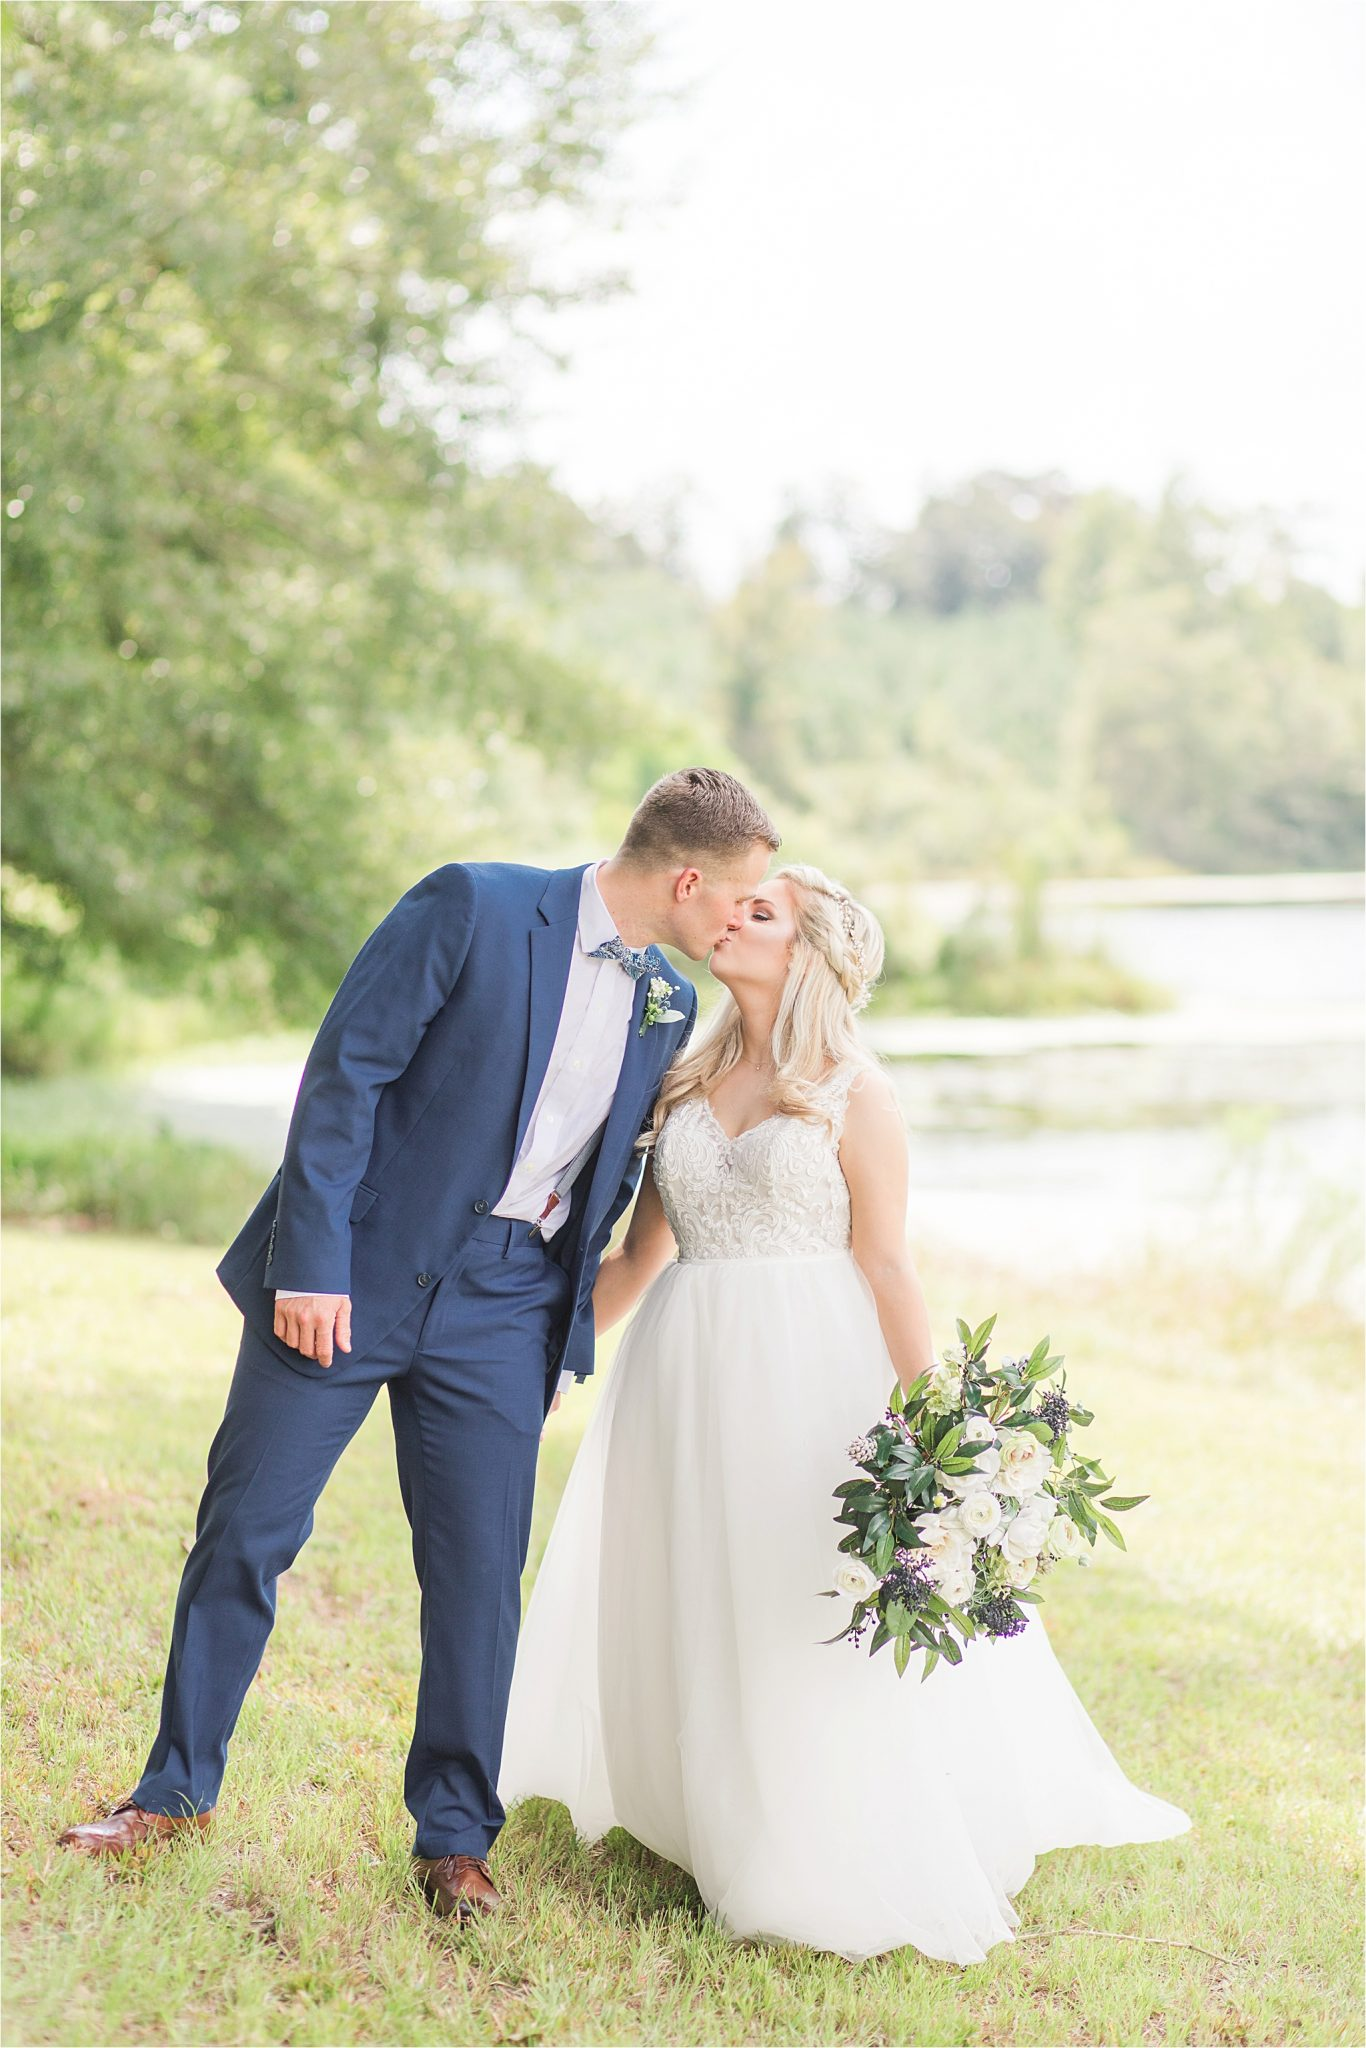 bridal-groom-portraits-photos-blue-suit-bow-tie-first-look-precious-moments